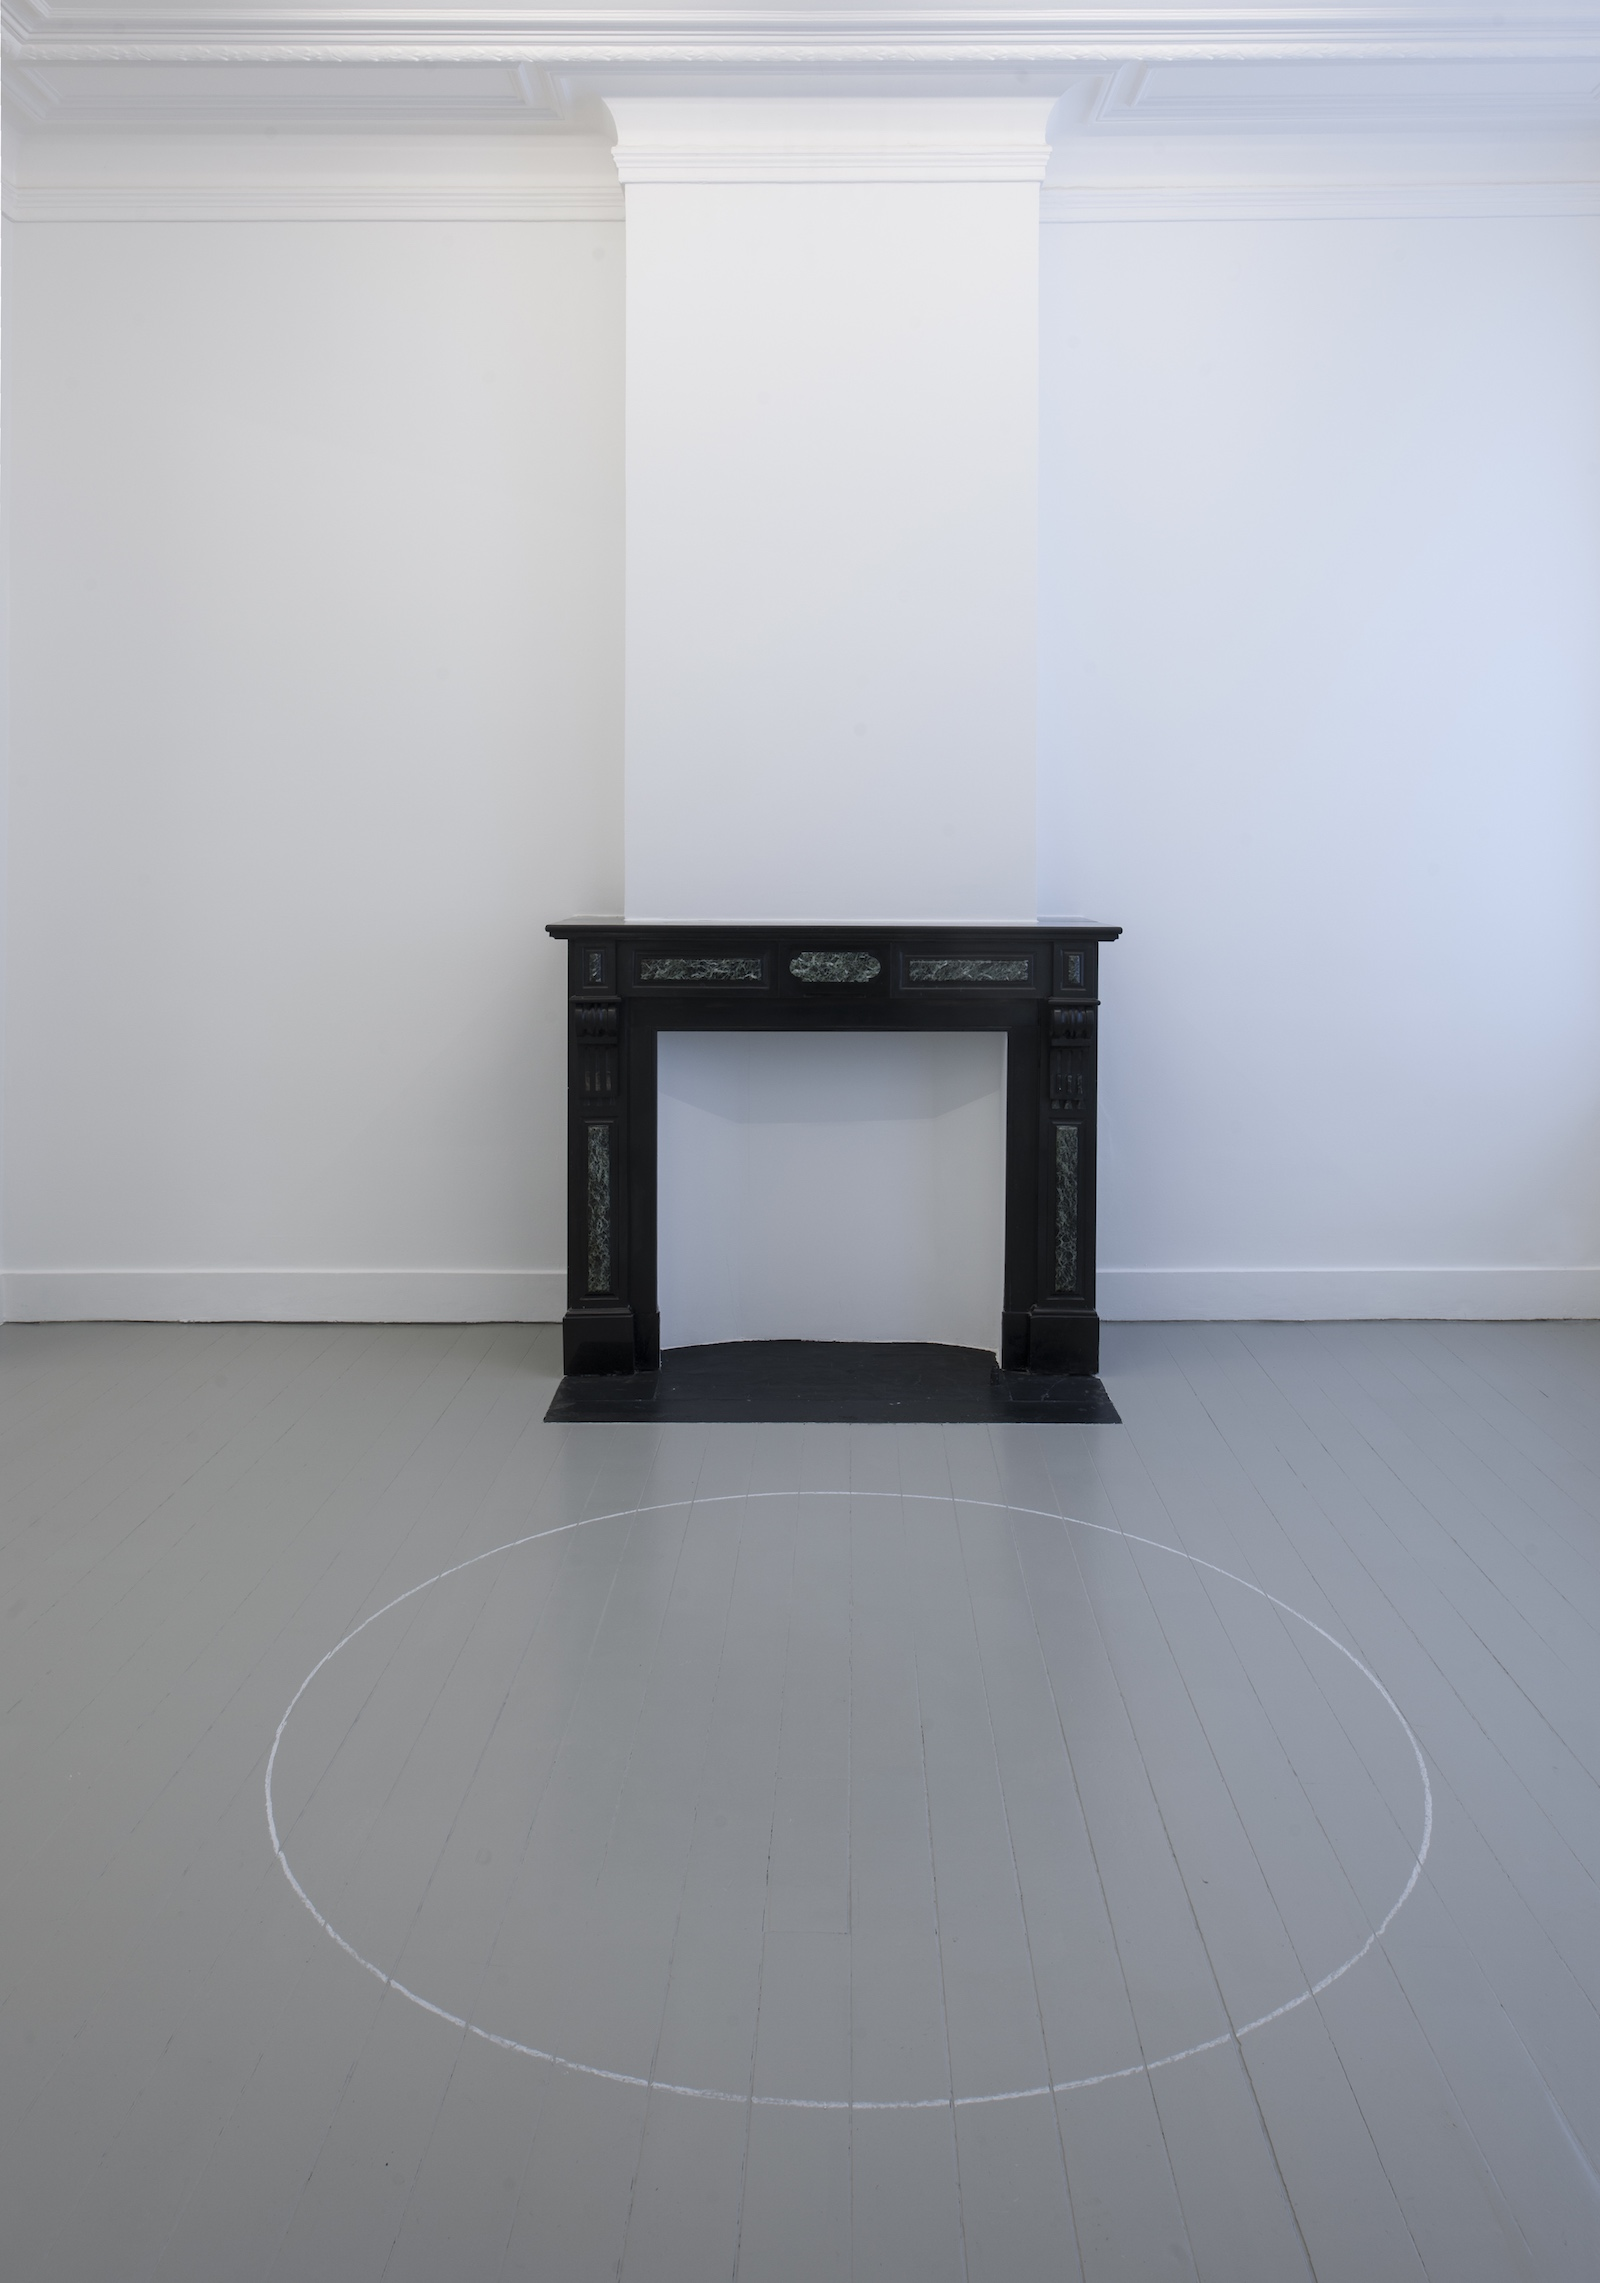 Ian Wilson -installation view at Jan Mot, 2019